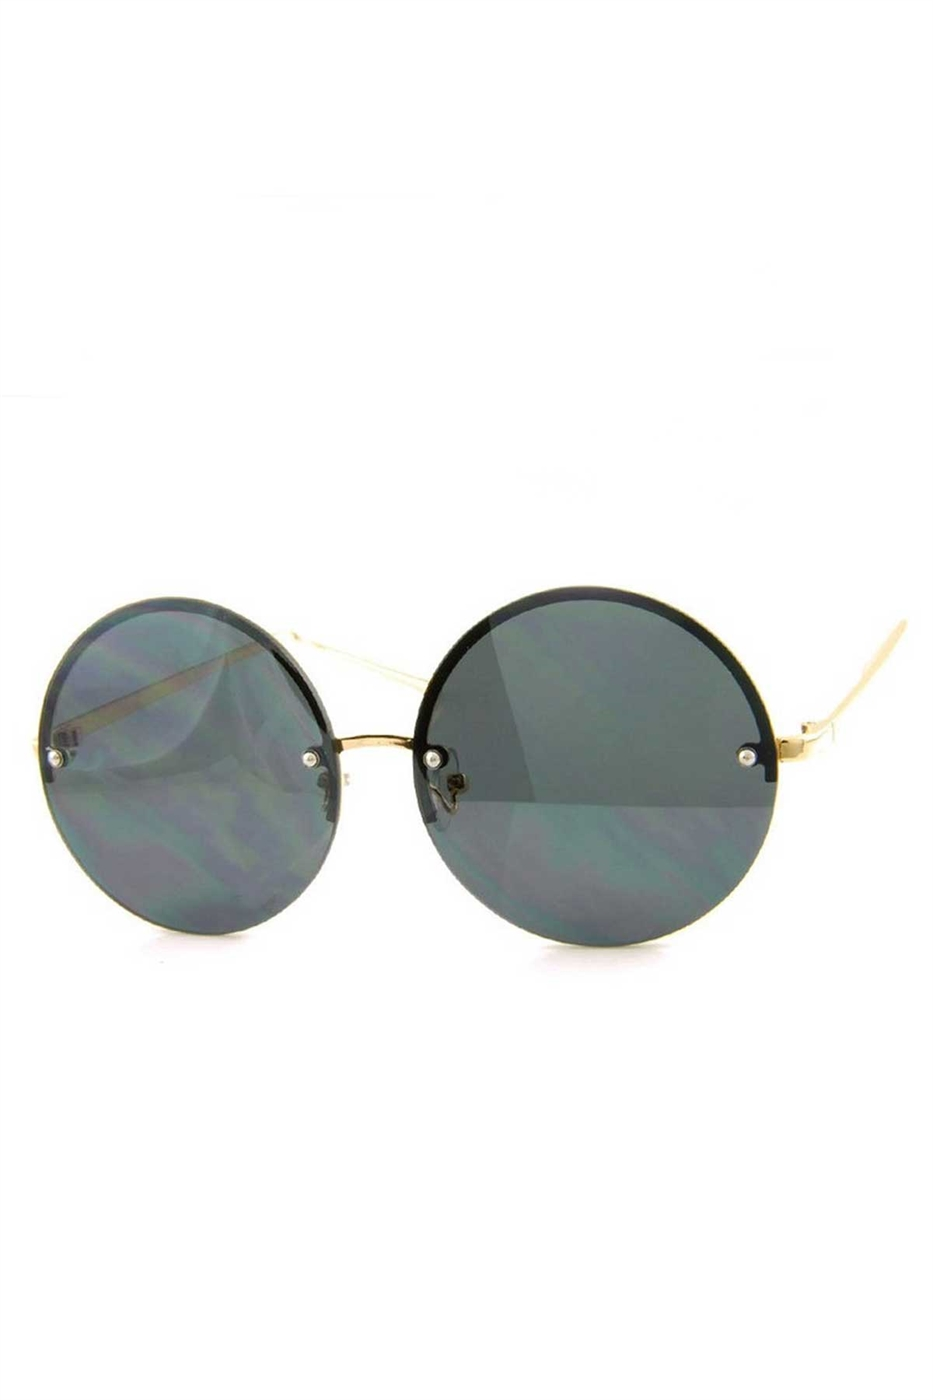 FASHION CIRCULAR SUNGLASSES - orangeshine.com